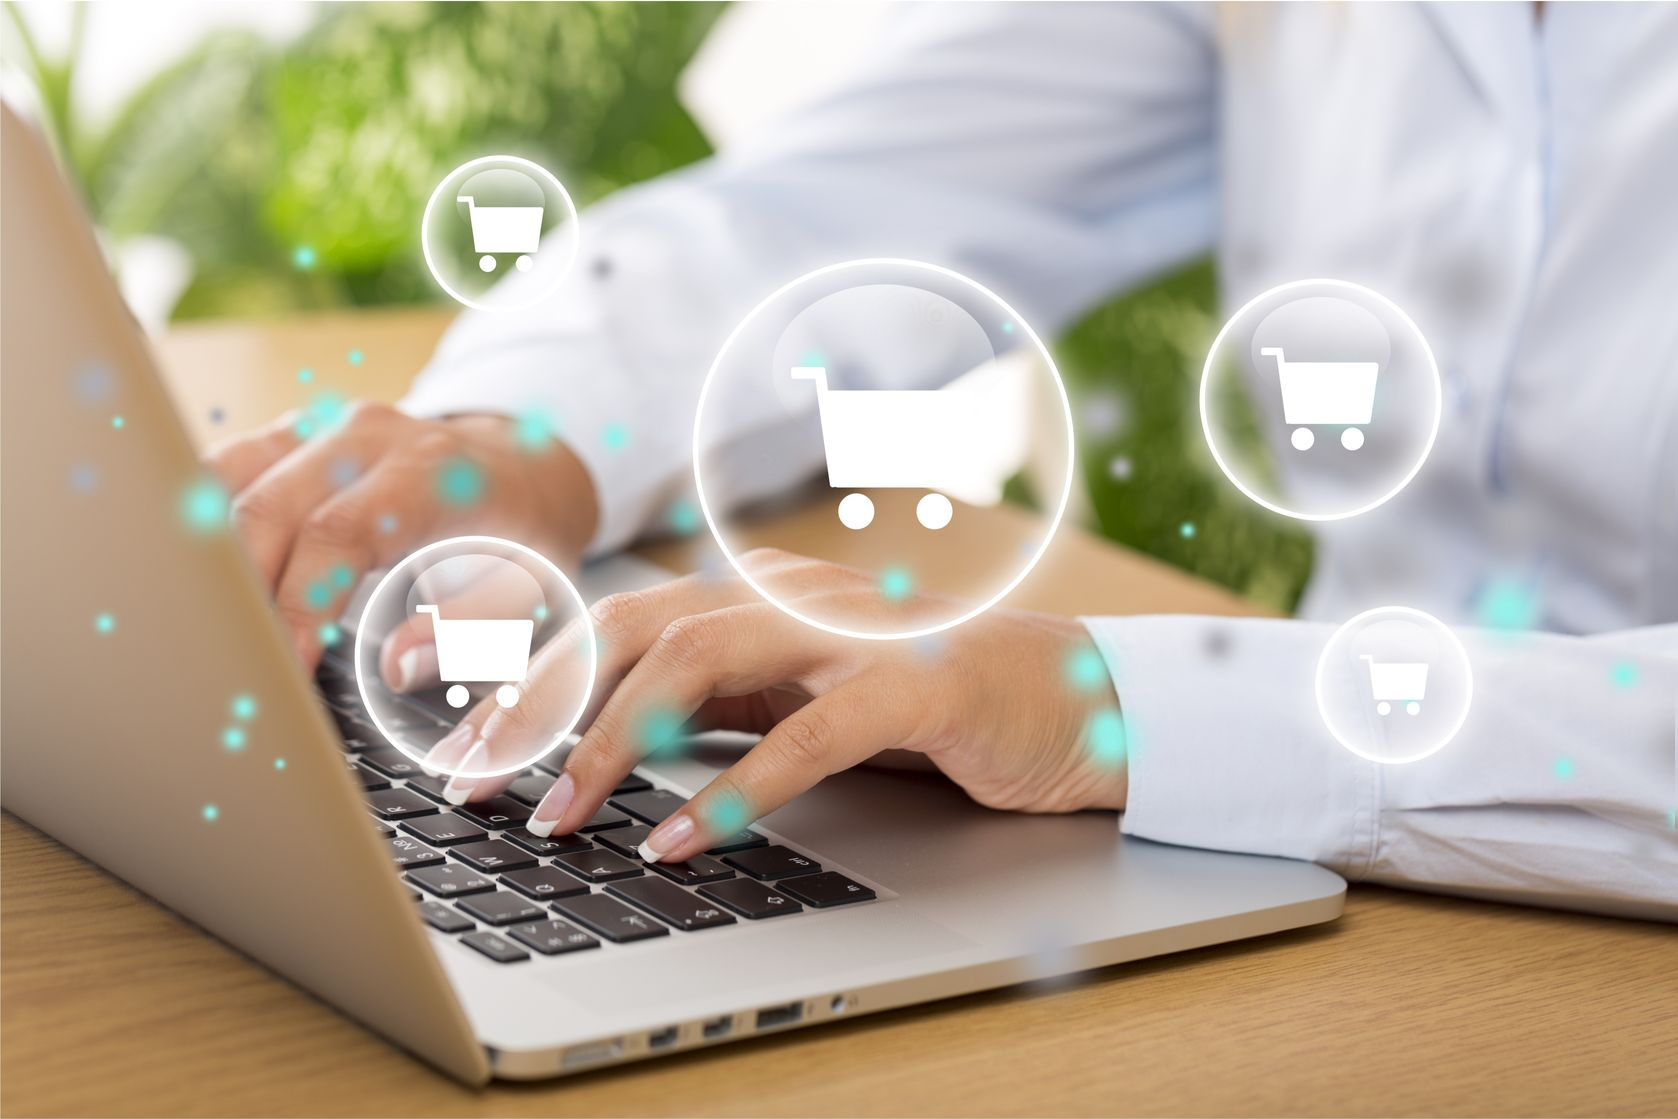 How does the online catalog's design affect sales?